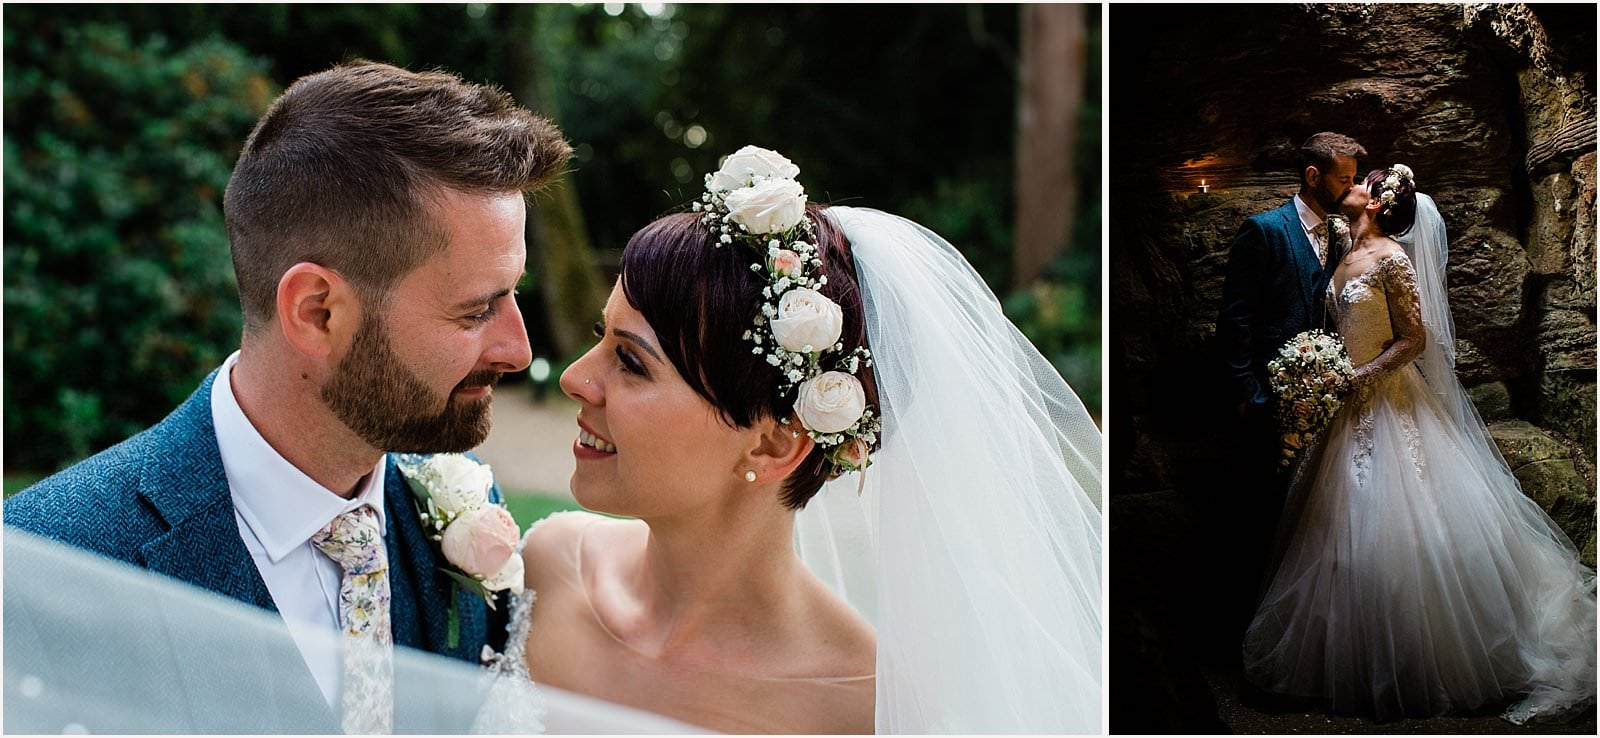 Wotton House Wedding - Justine + Rob's stunning wedding 41